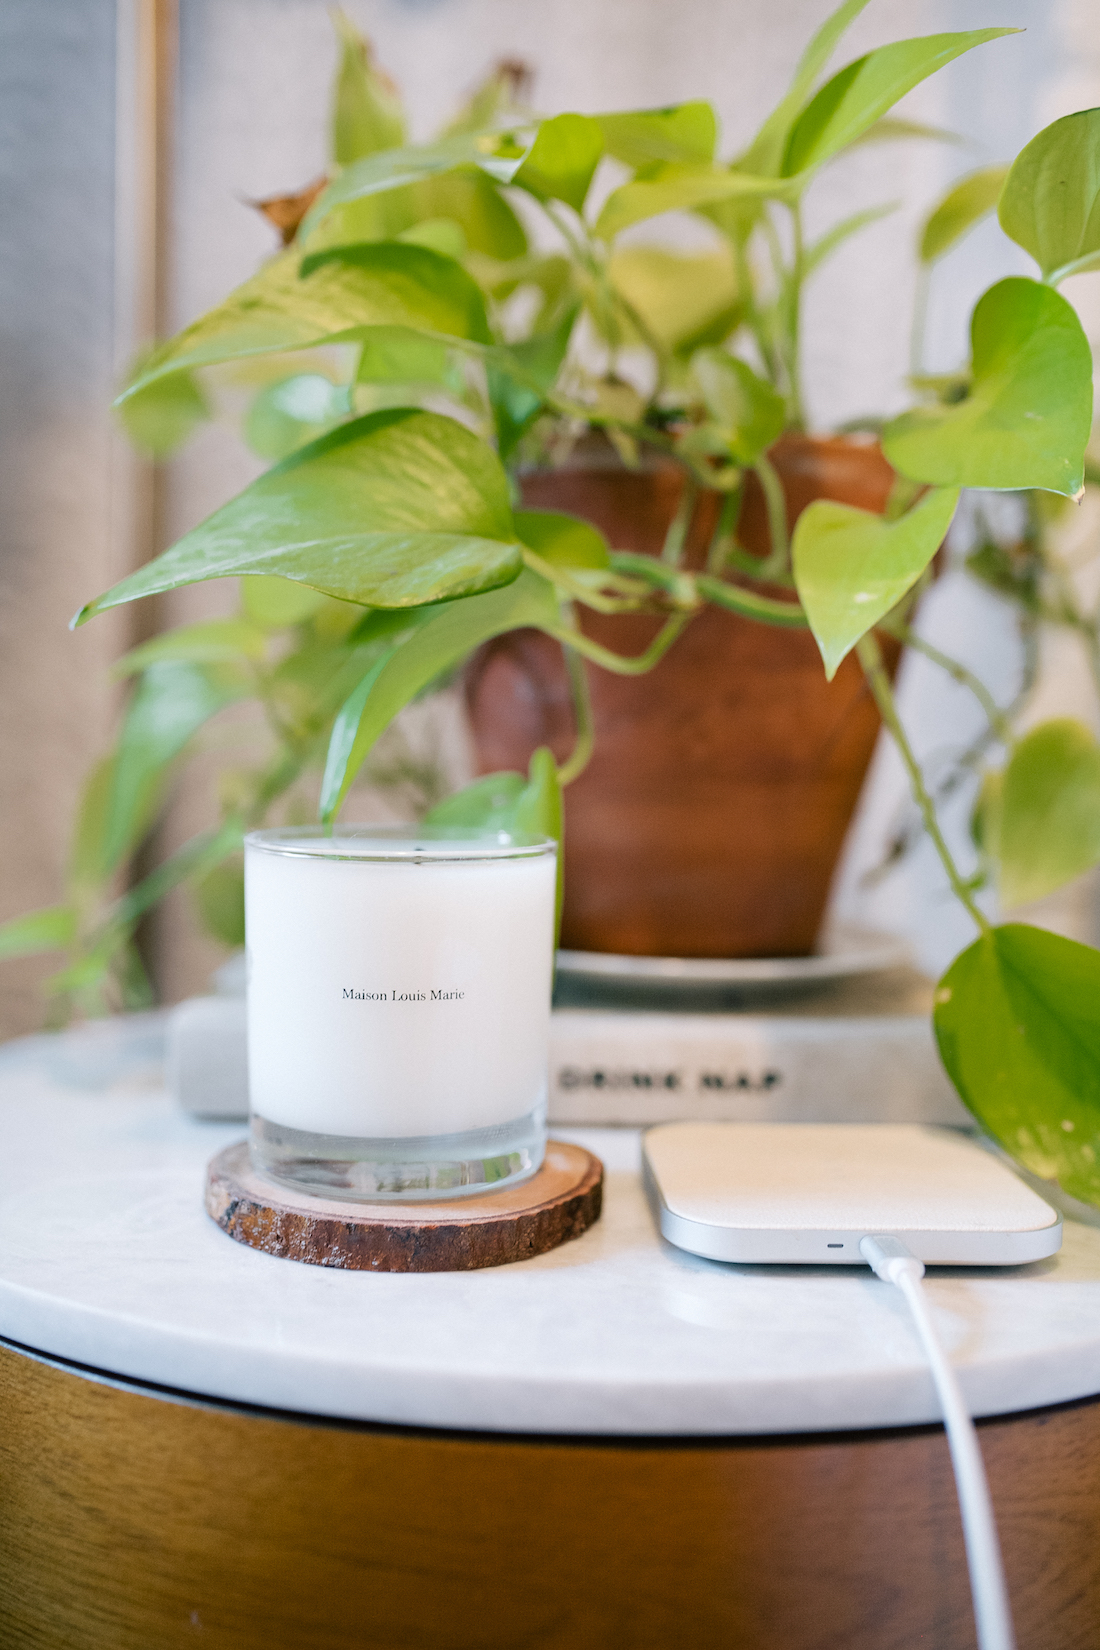 Maison Louis Marie Candle+ Courant Charging Mat